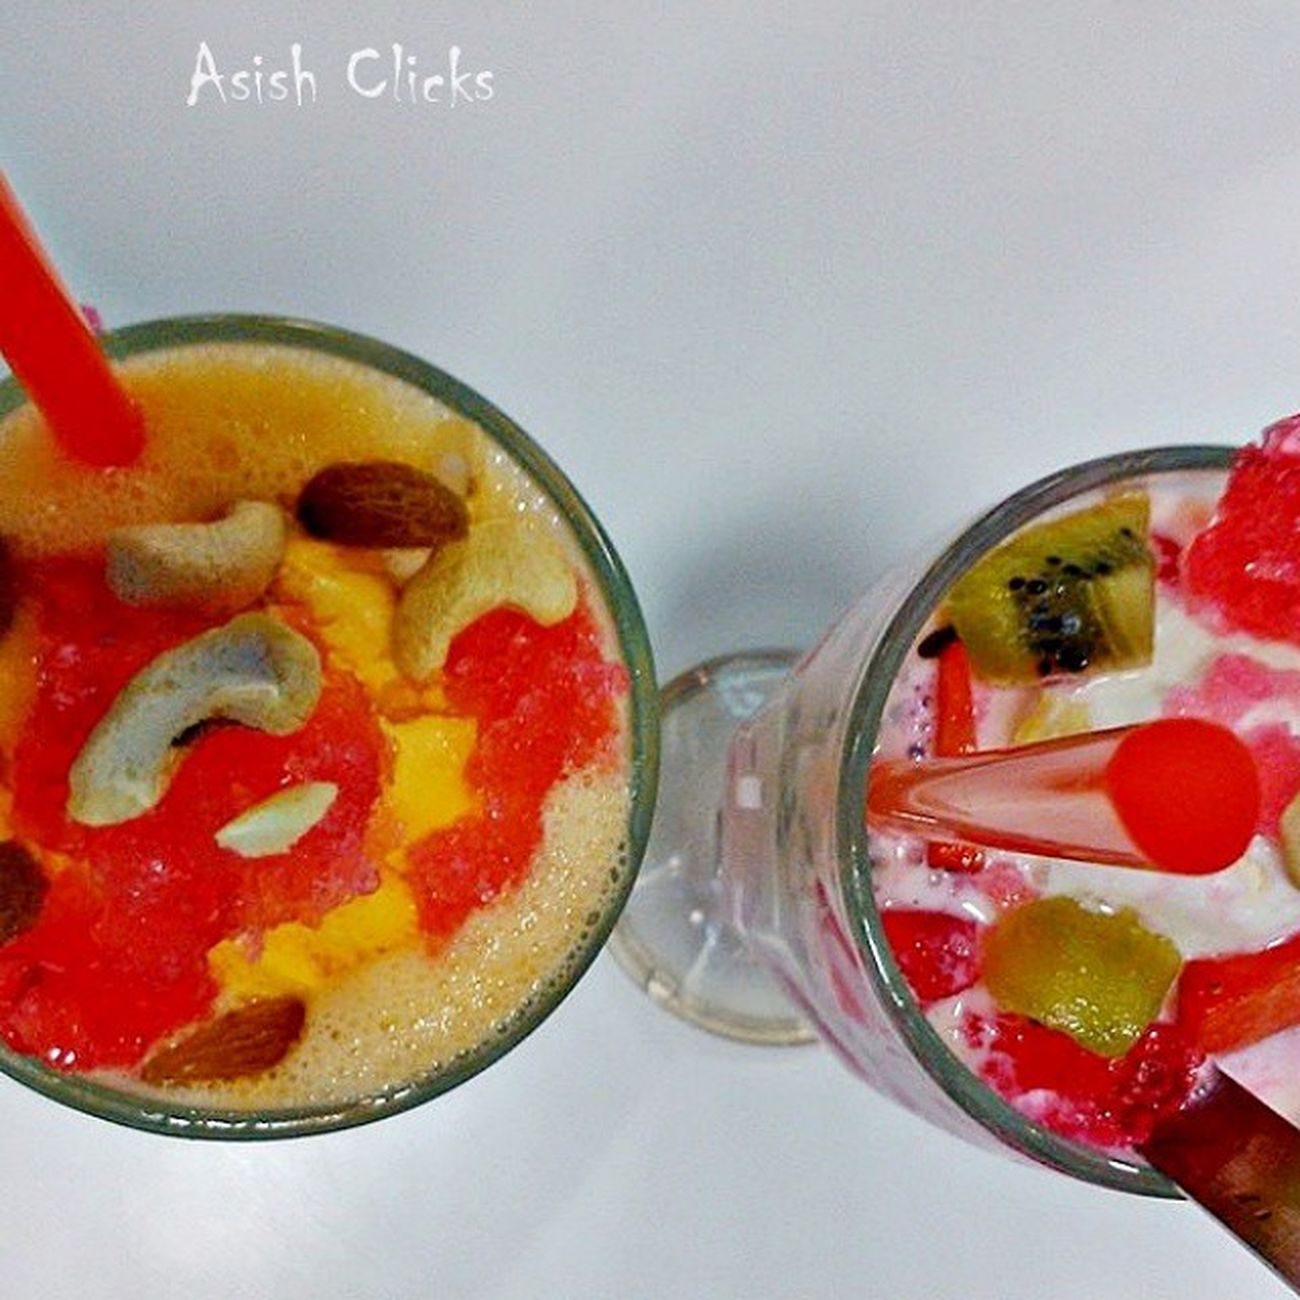 Mango and Fruit Falooda - Aerial view Falooda Mango Fruit Foodporn Food Drinks Milkshake Yummy Delicious Eatthis Eats Foodphotography Mobilephotography Asishclicks Loveit Bombaystan Chennai Vadapalani Forumvijayamall Fun Tasty Heavenly